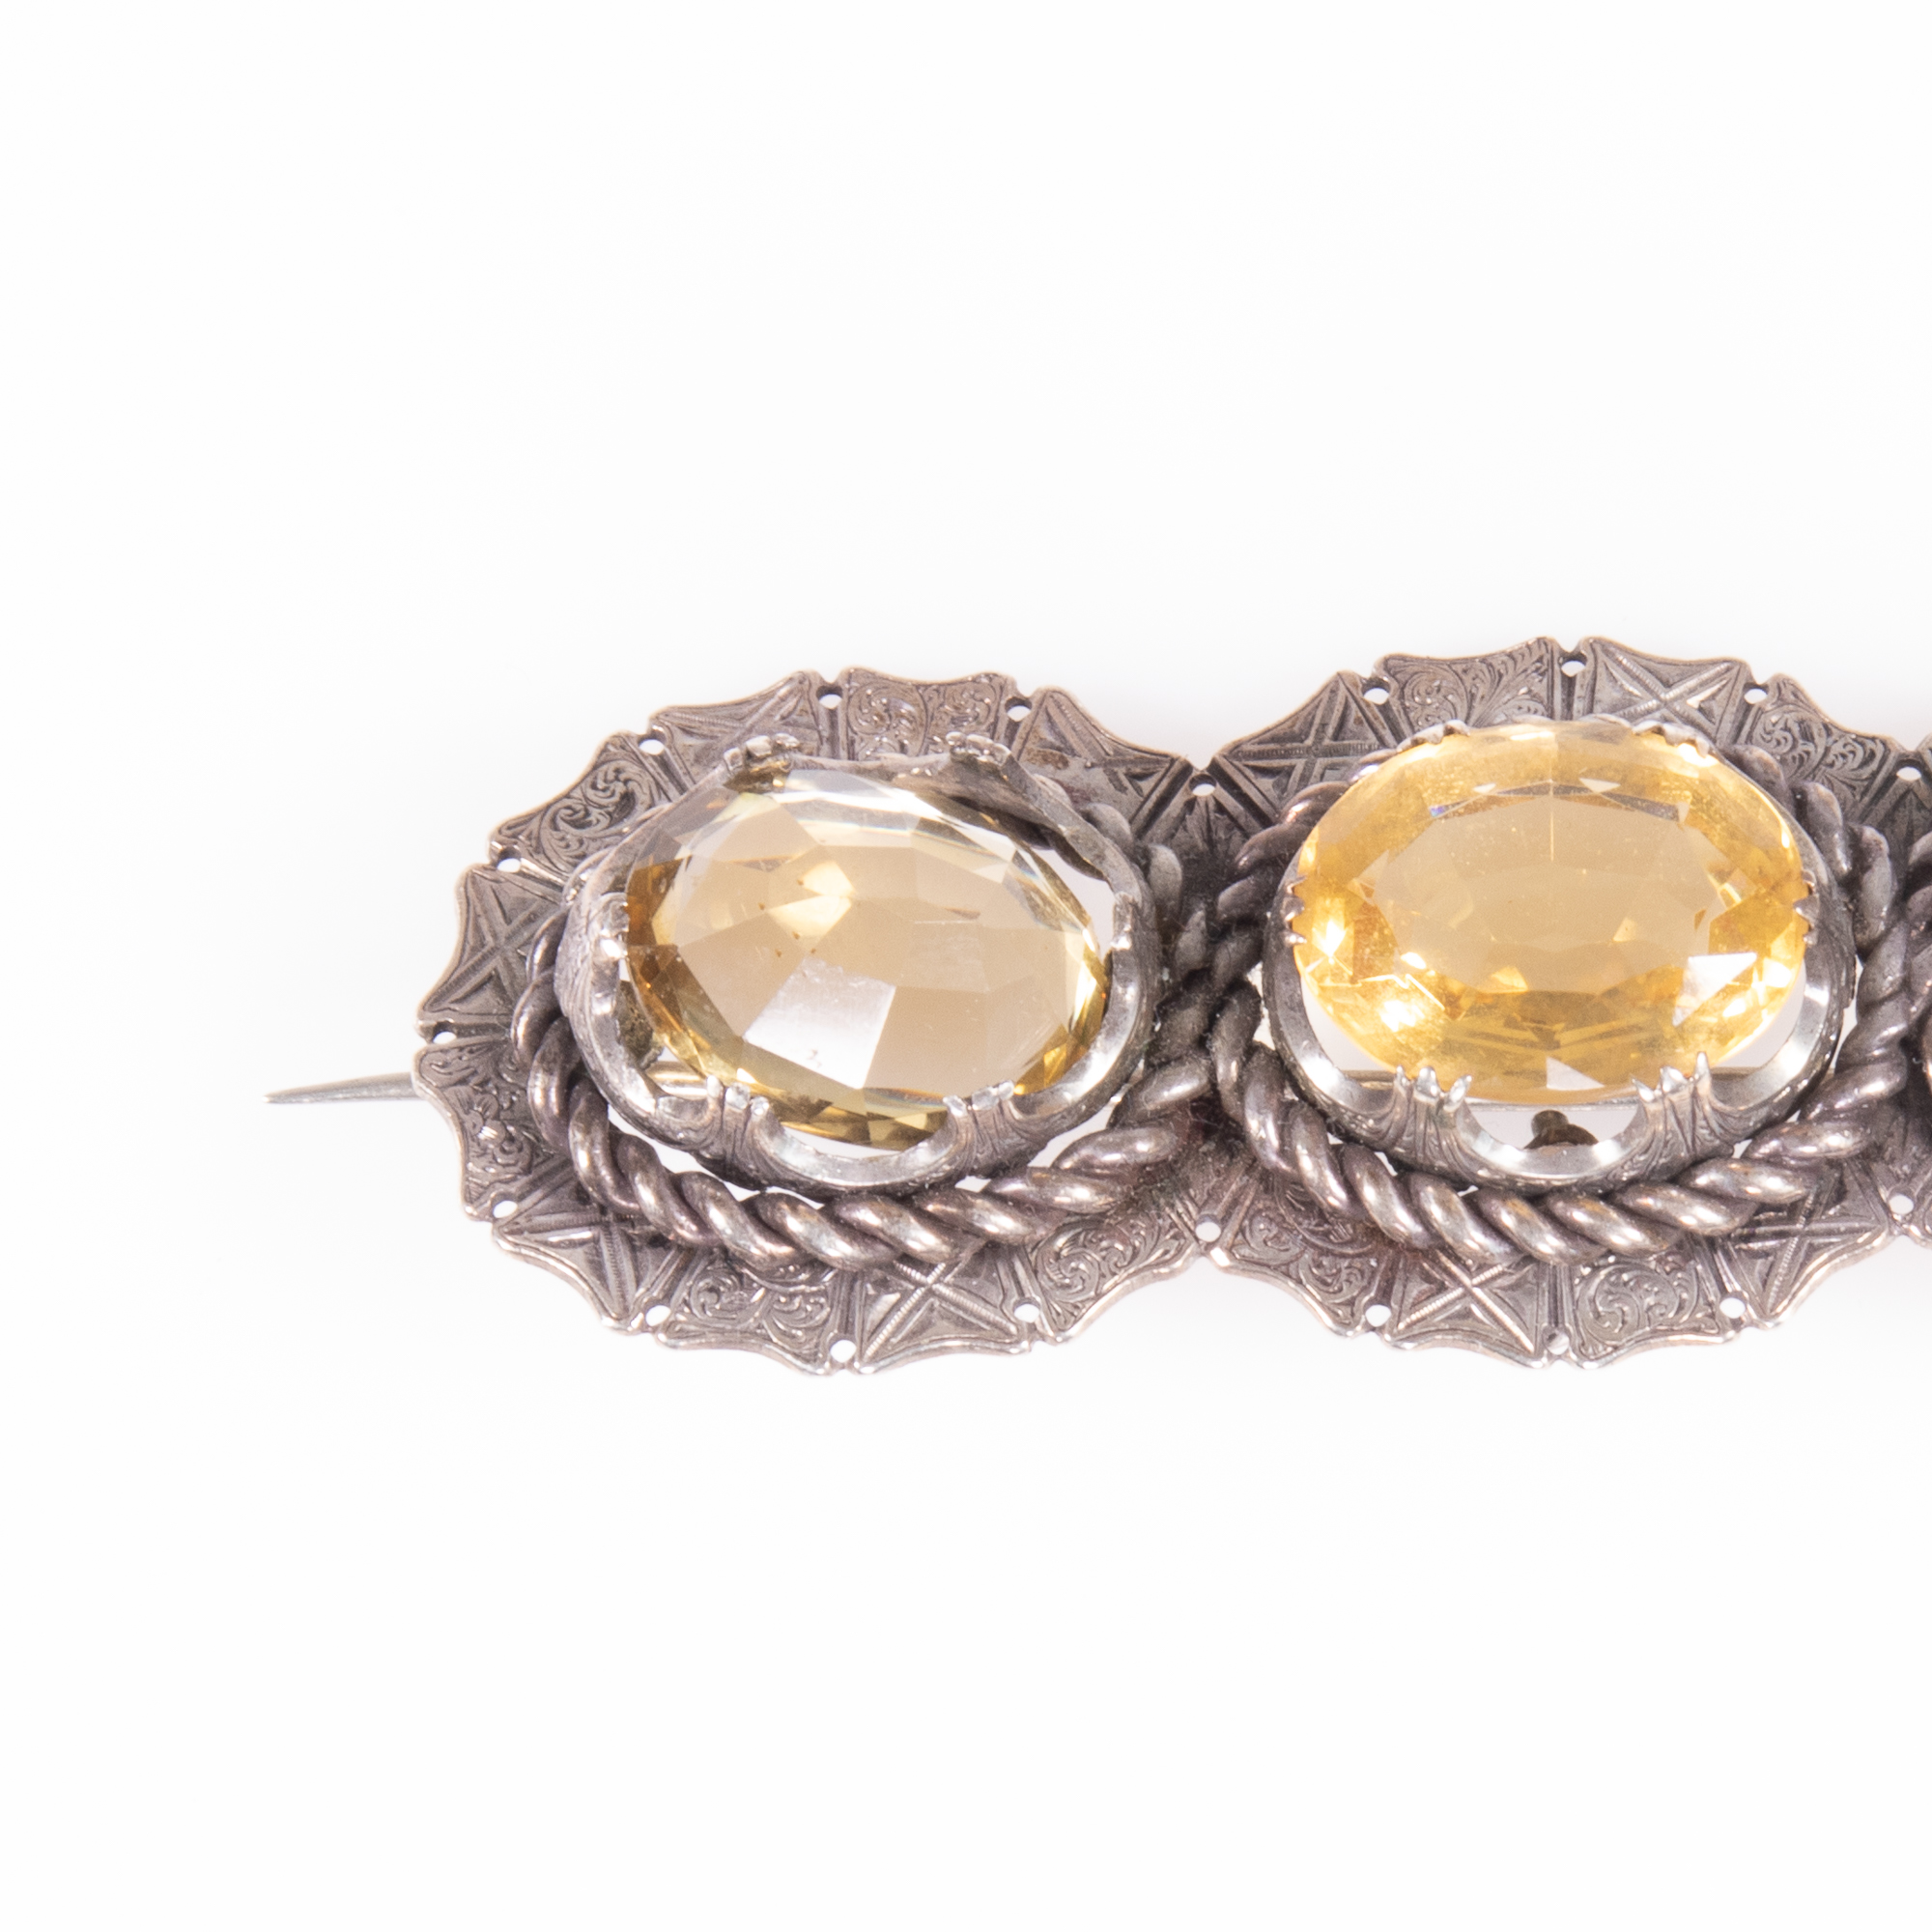 Victorian Cairngorm Silver 28.20ct Citrine Brooch ca. 1880 - Image 2 of 6